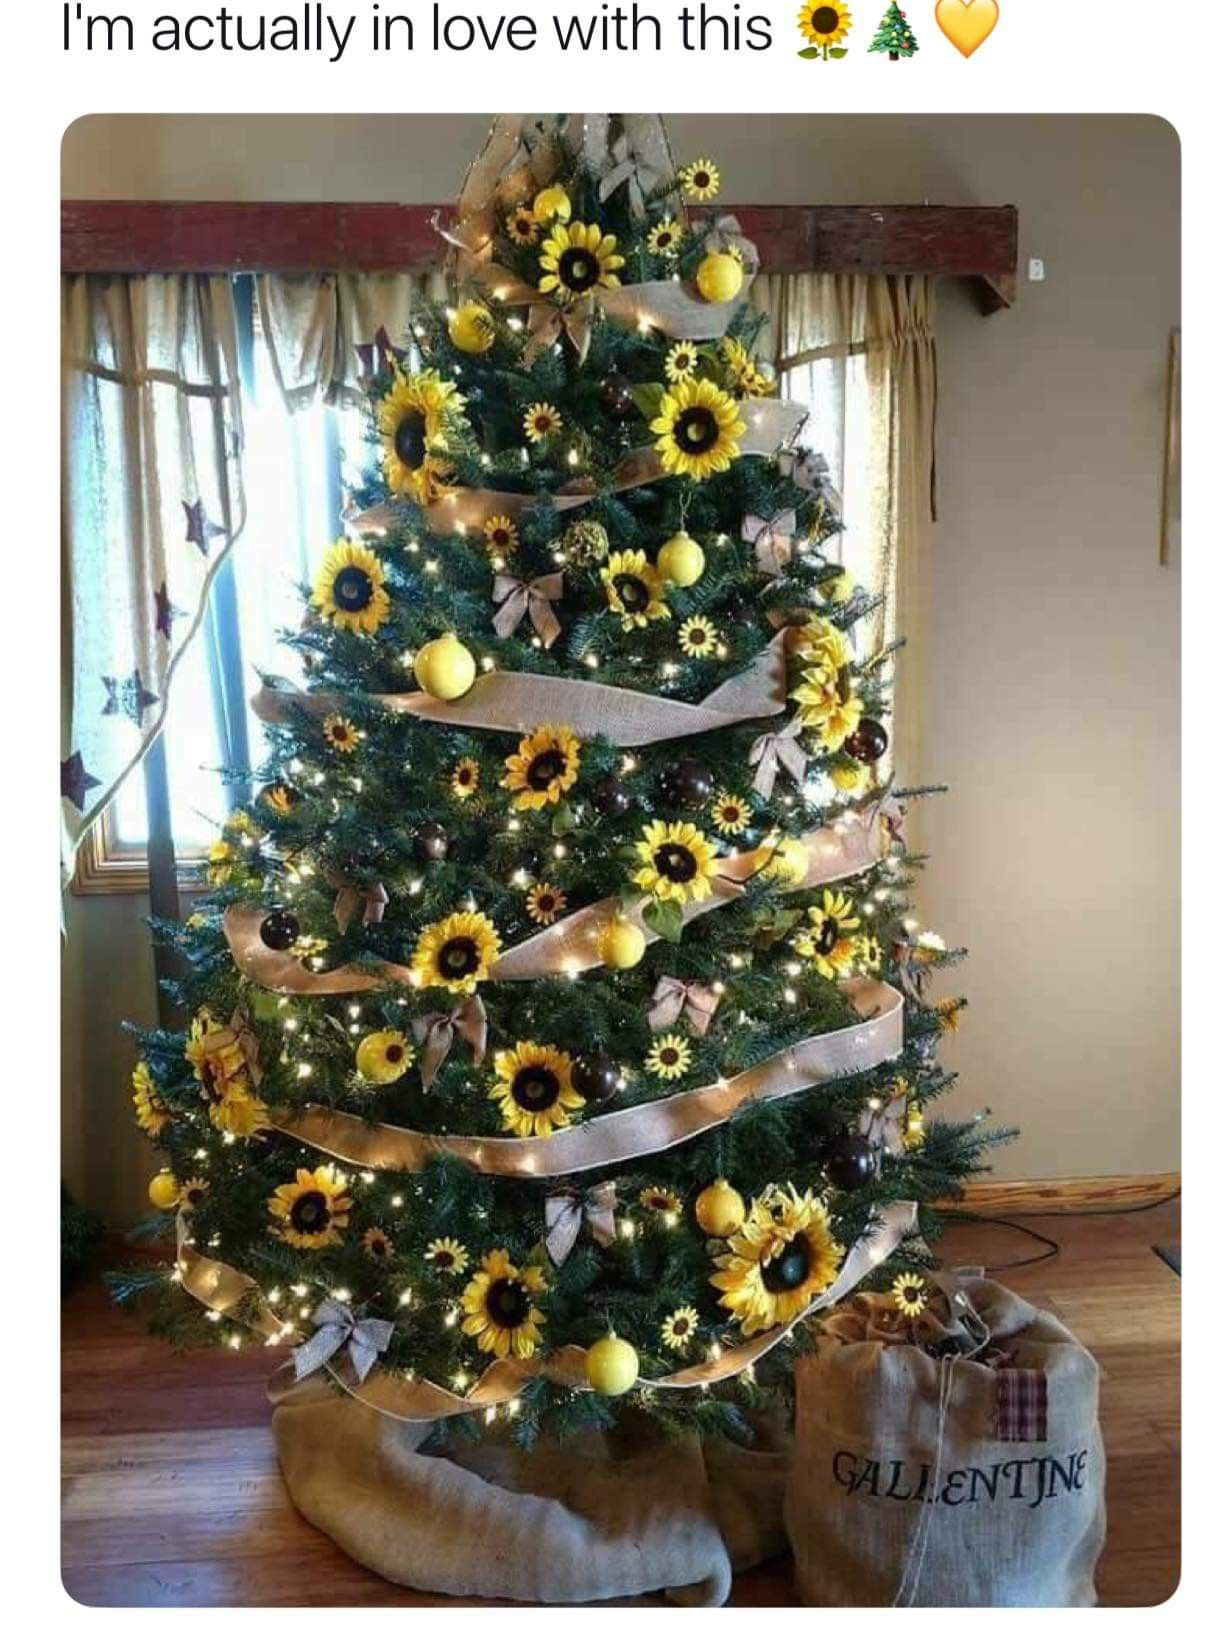 Sunflower Christmas tree #sunflowerchristmastree